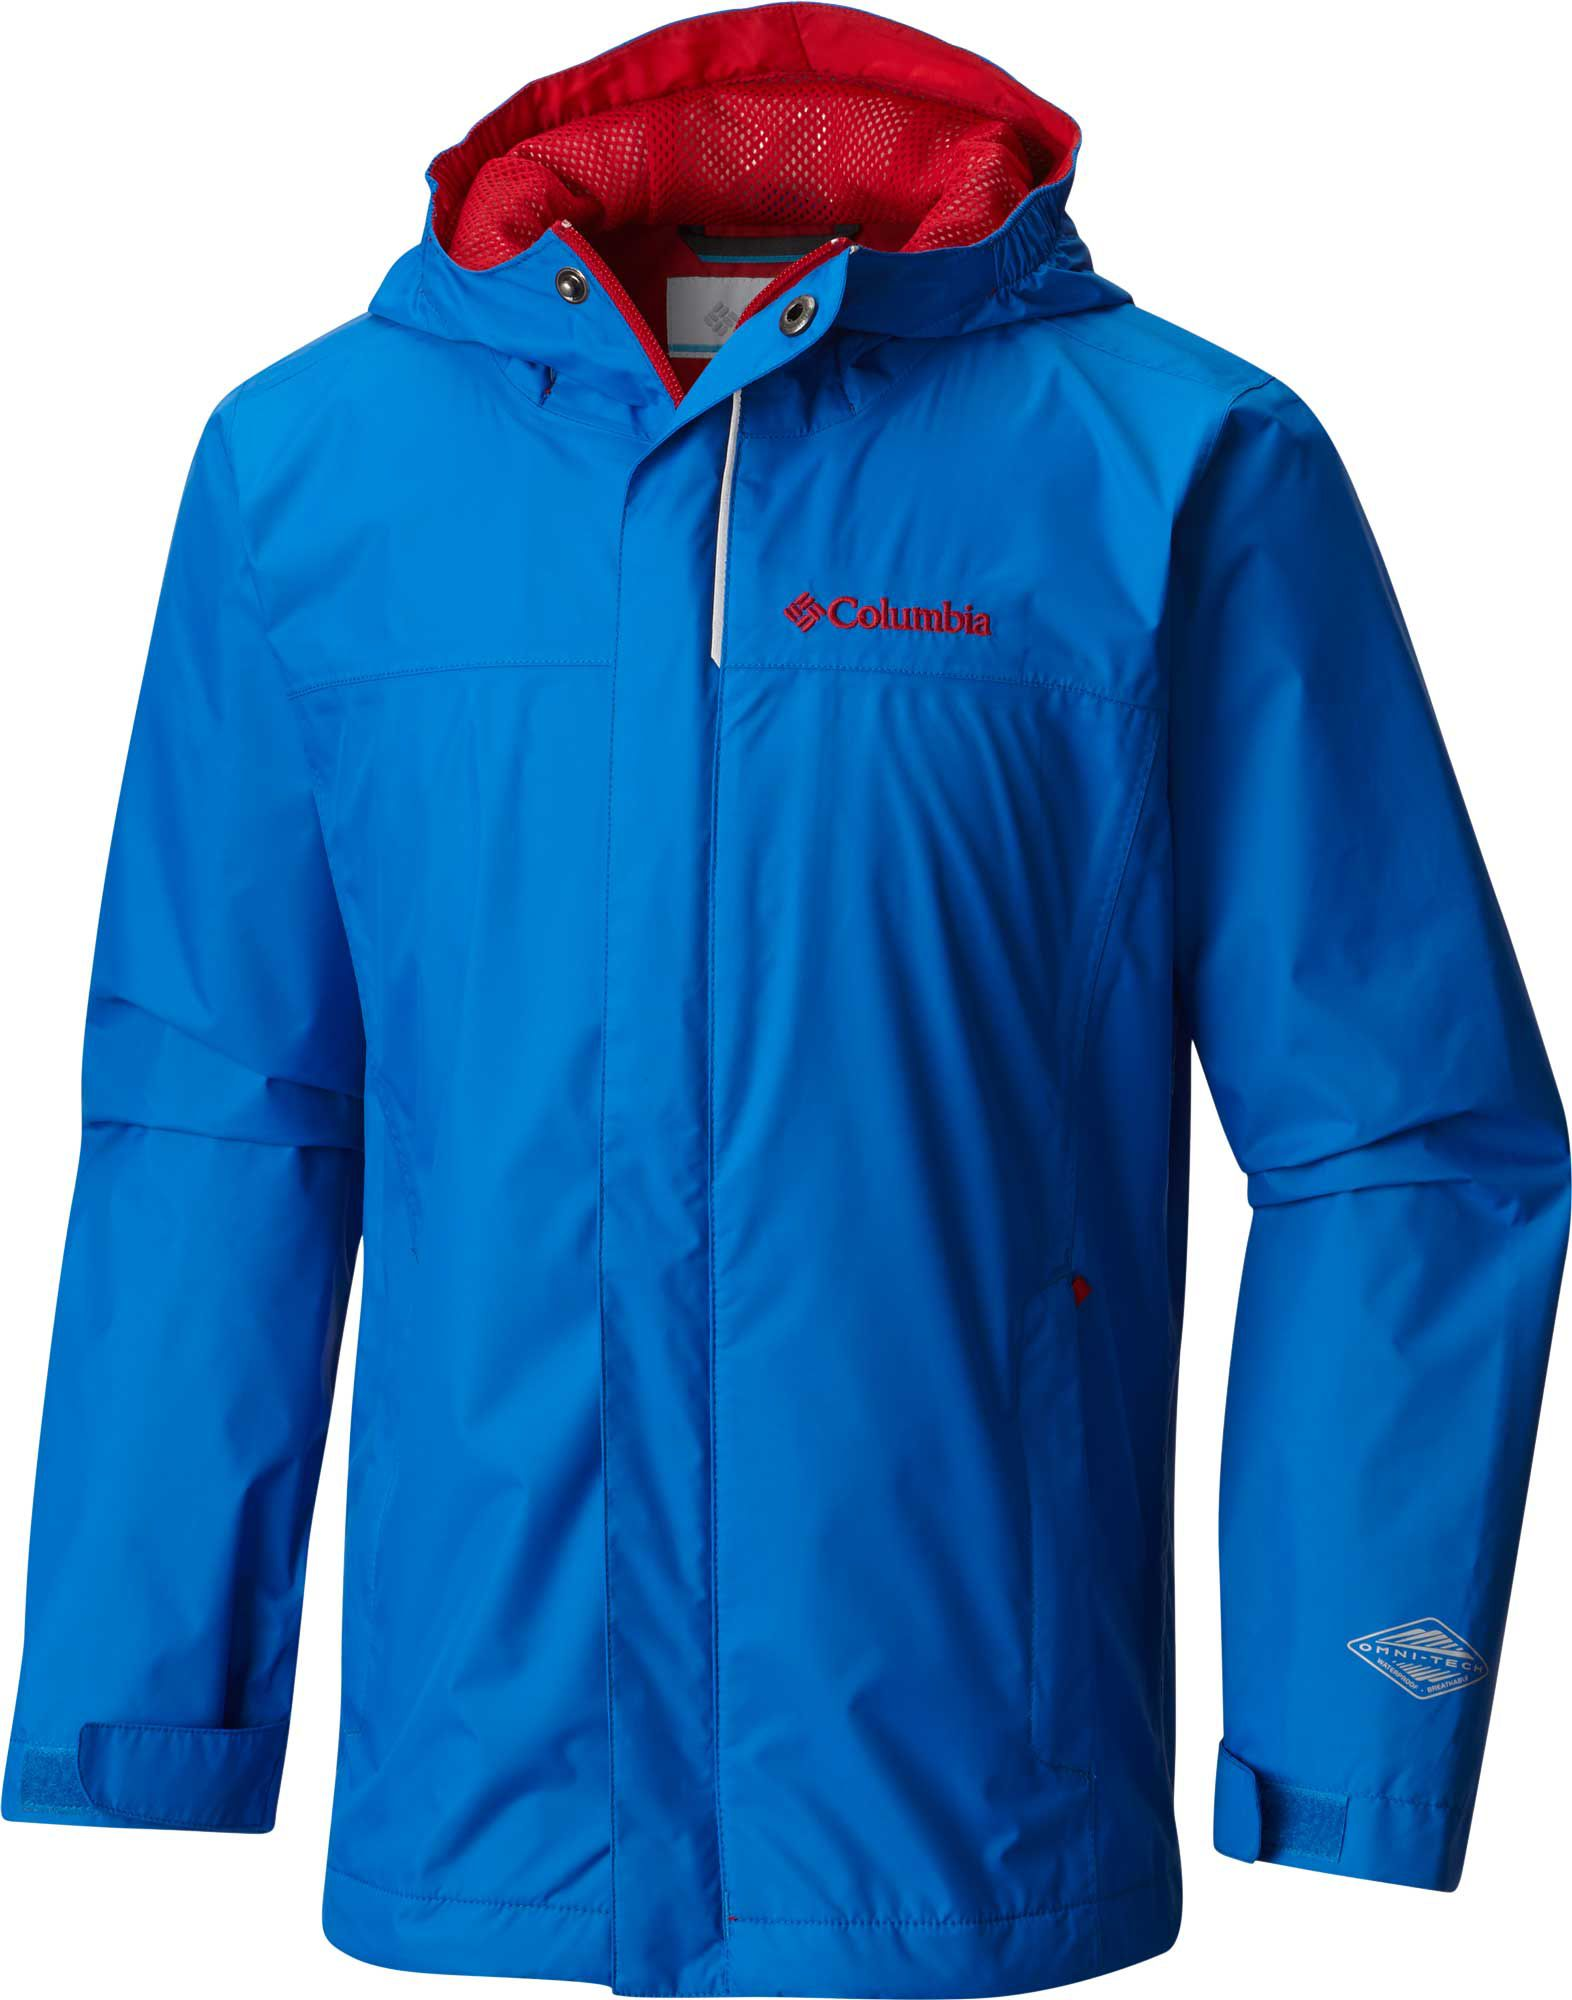 Waterproof Jackets | DICK'S Sporting Goods